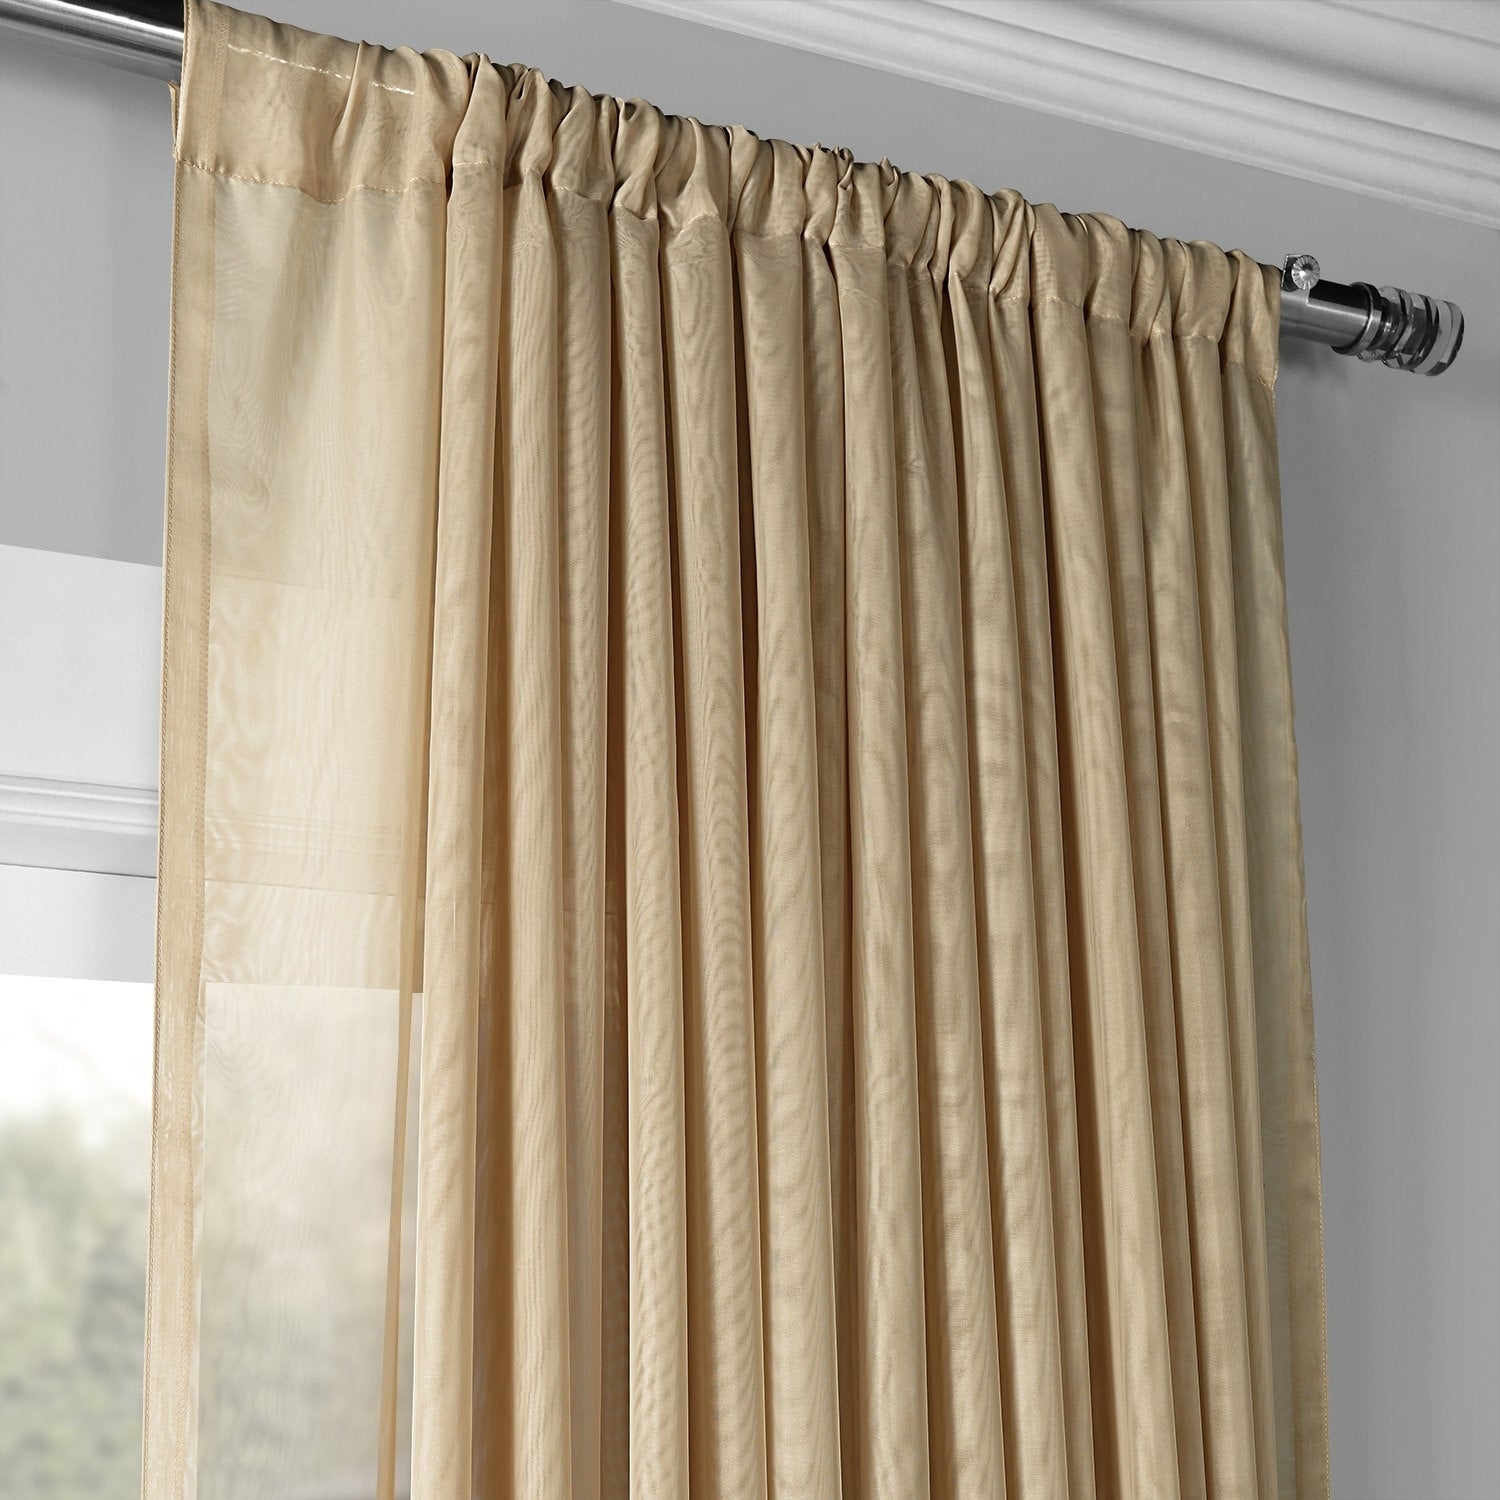 Exclusive Fabrics Signature Extrawide Double Layer Sheer Curtain Panel Pertaining To Signature Extrawide Double Layer Sheer Curtain Panels (View 5 of 11)